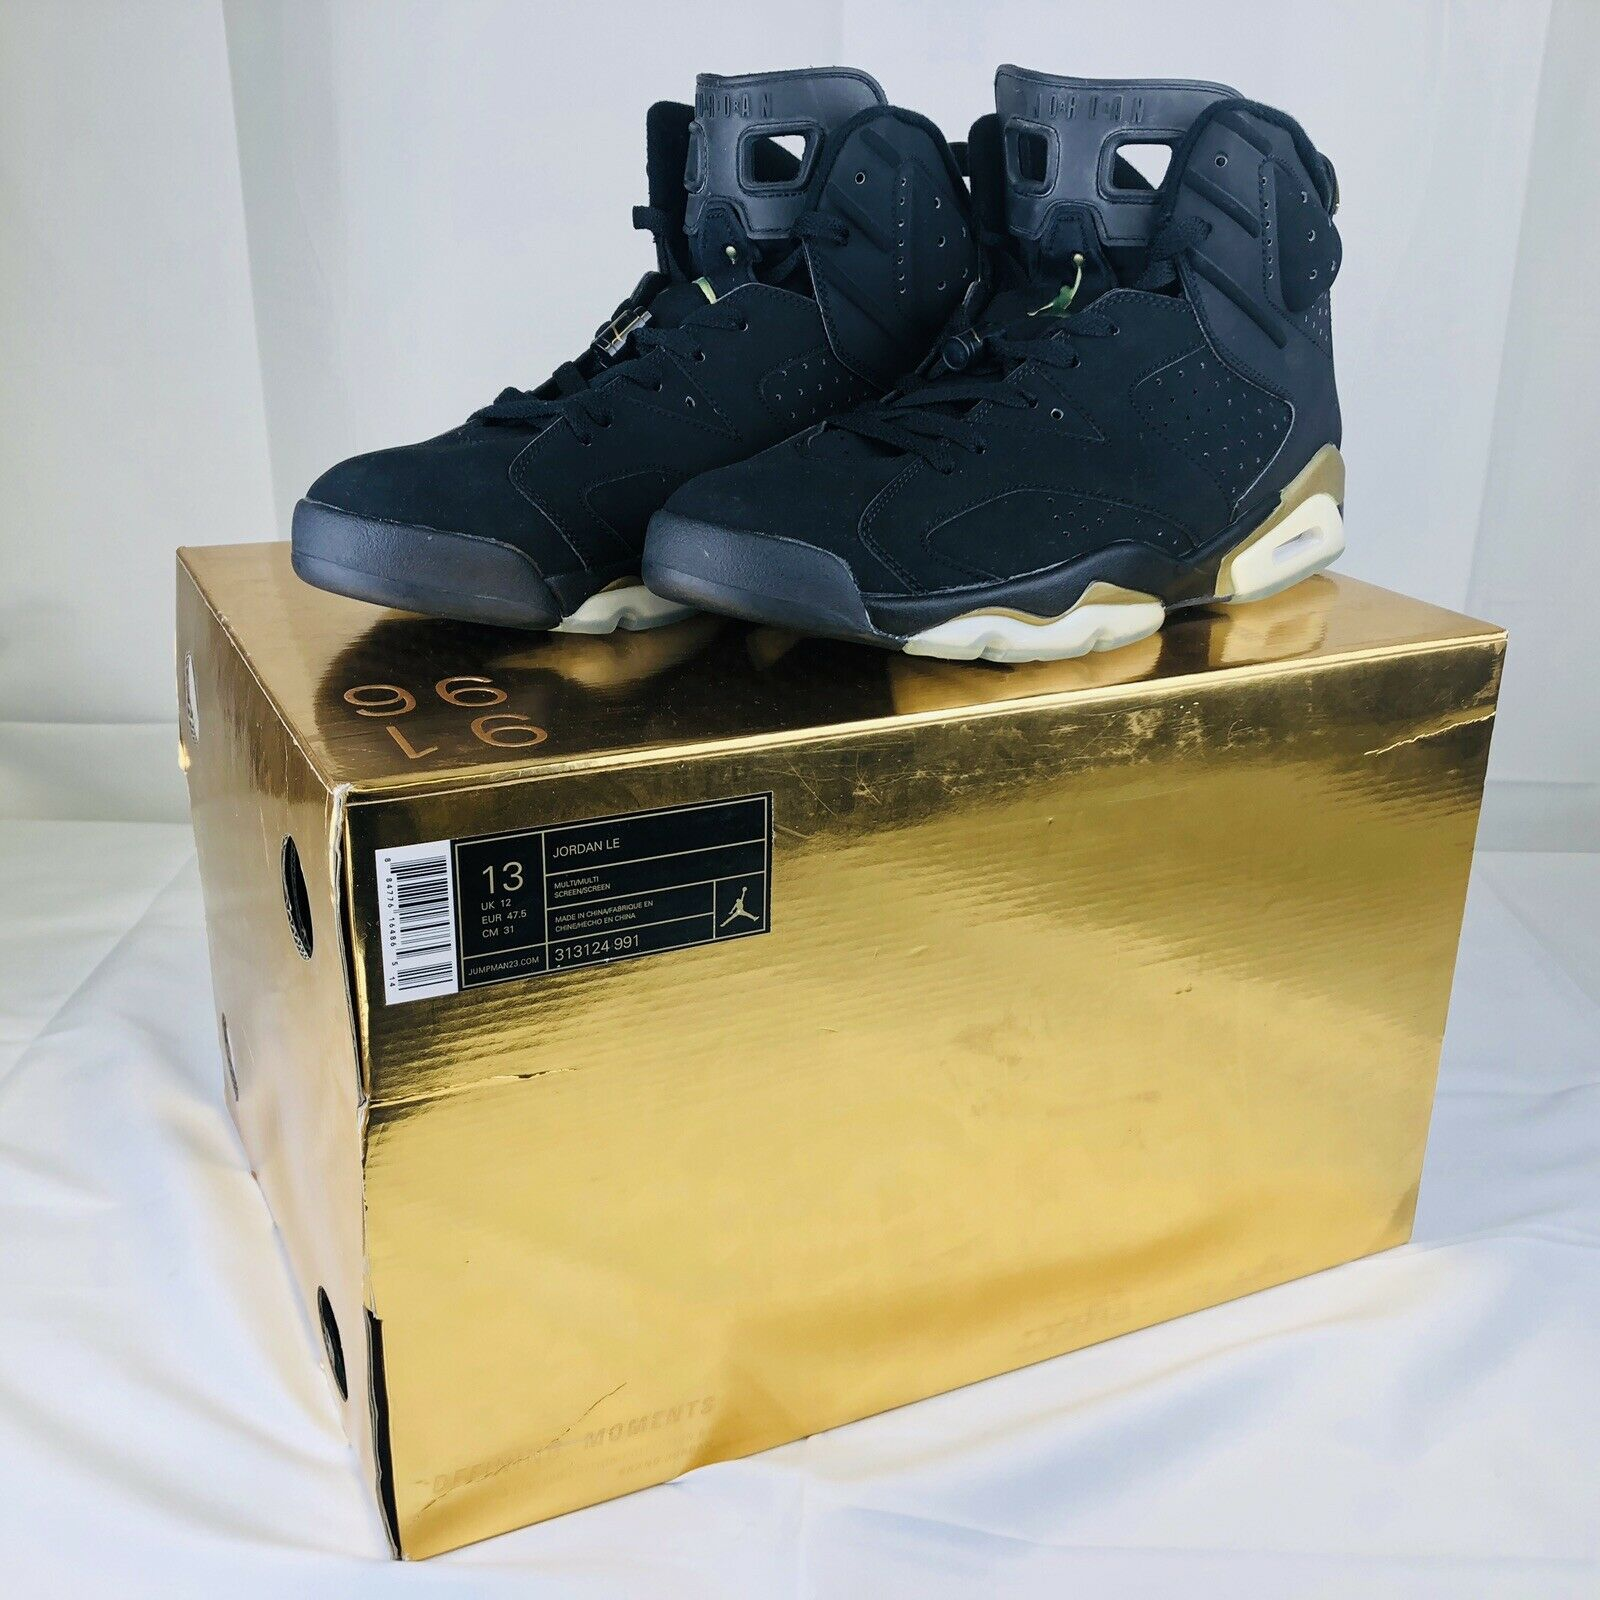 Nike Air Jordan VI 6 LE Limited Edition Defining Moments Pack 313124-991 SIZE 13